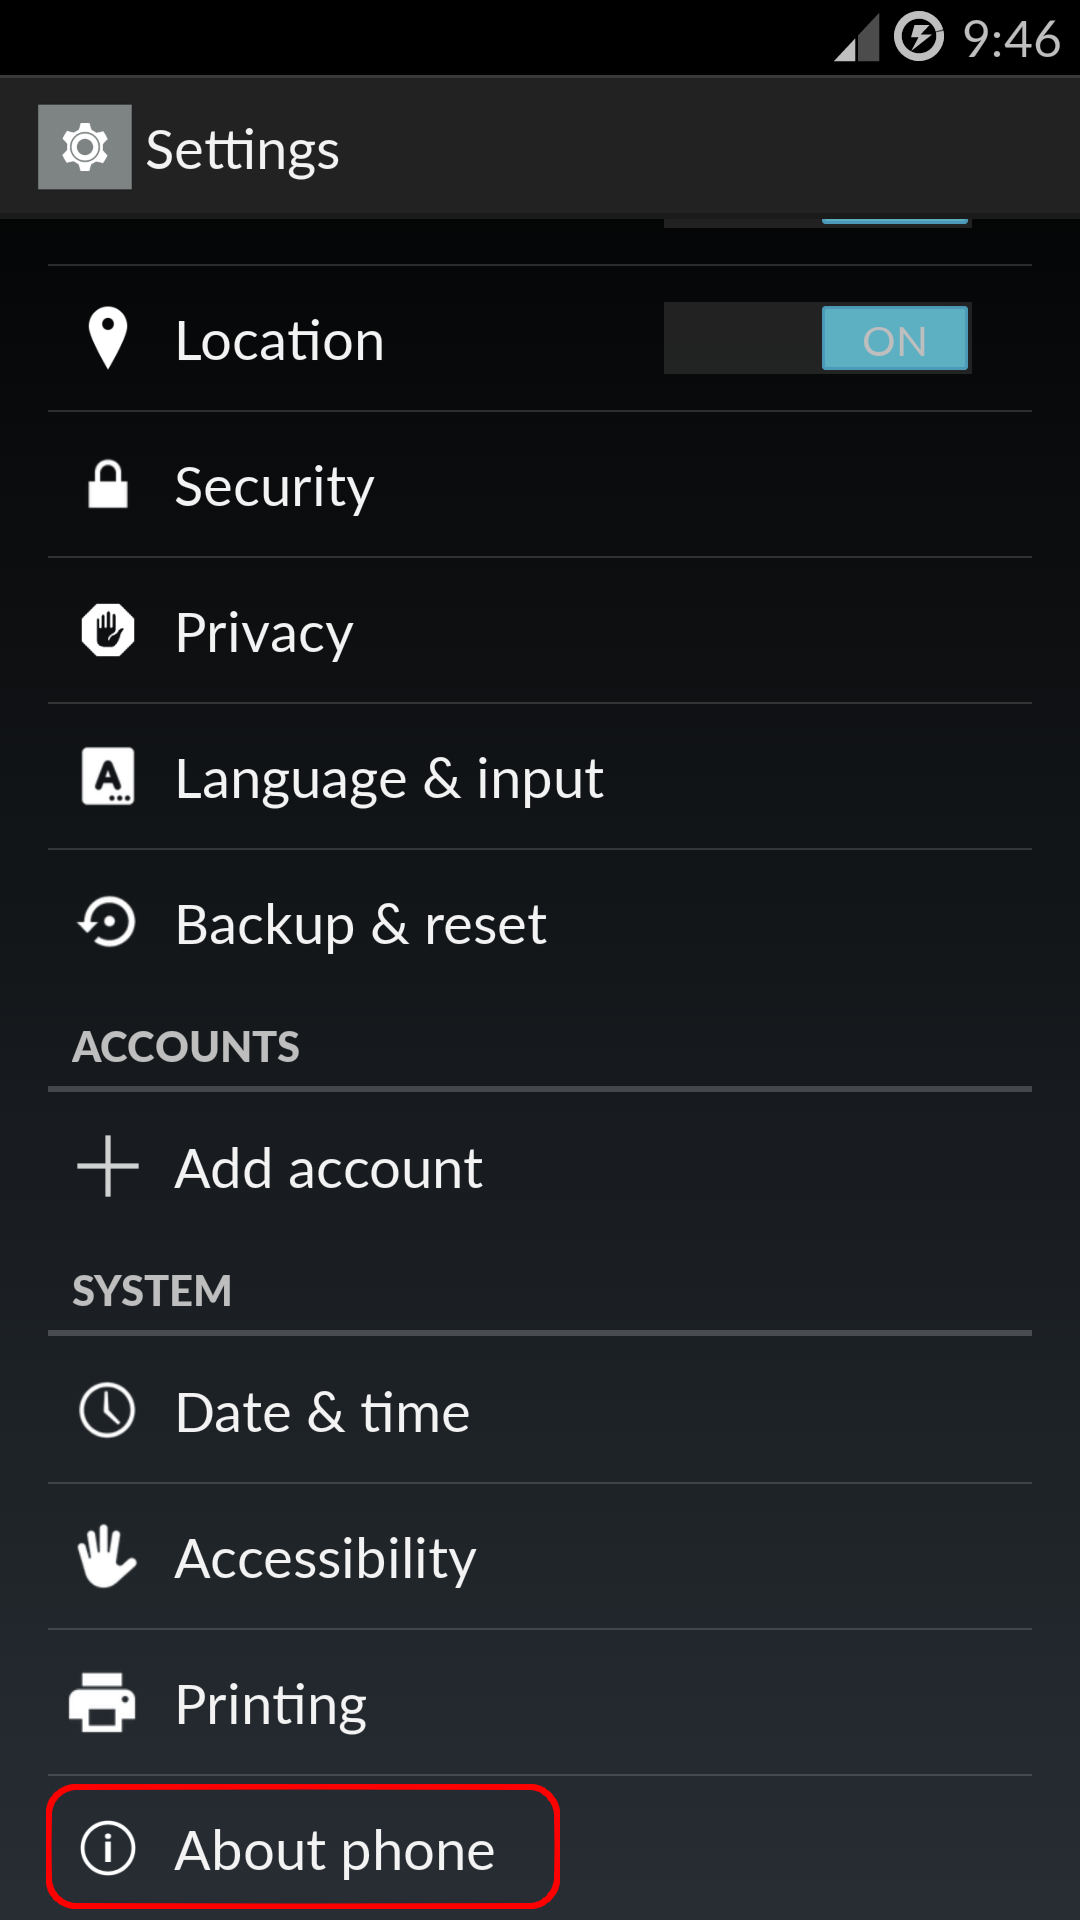 Guide - Ubuntu & OnePlus One: unlock the bootloader, install